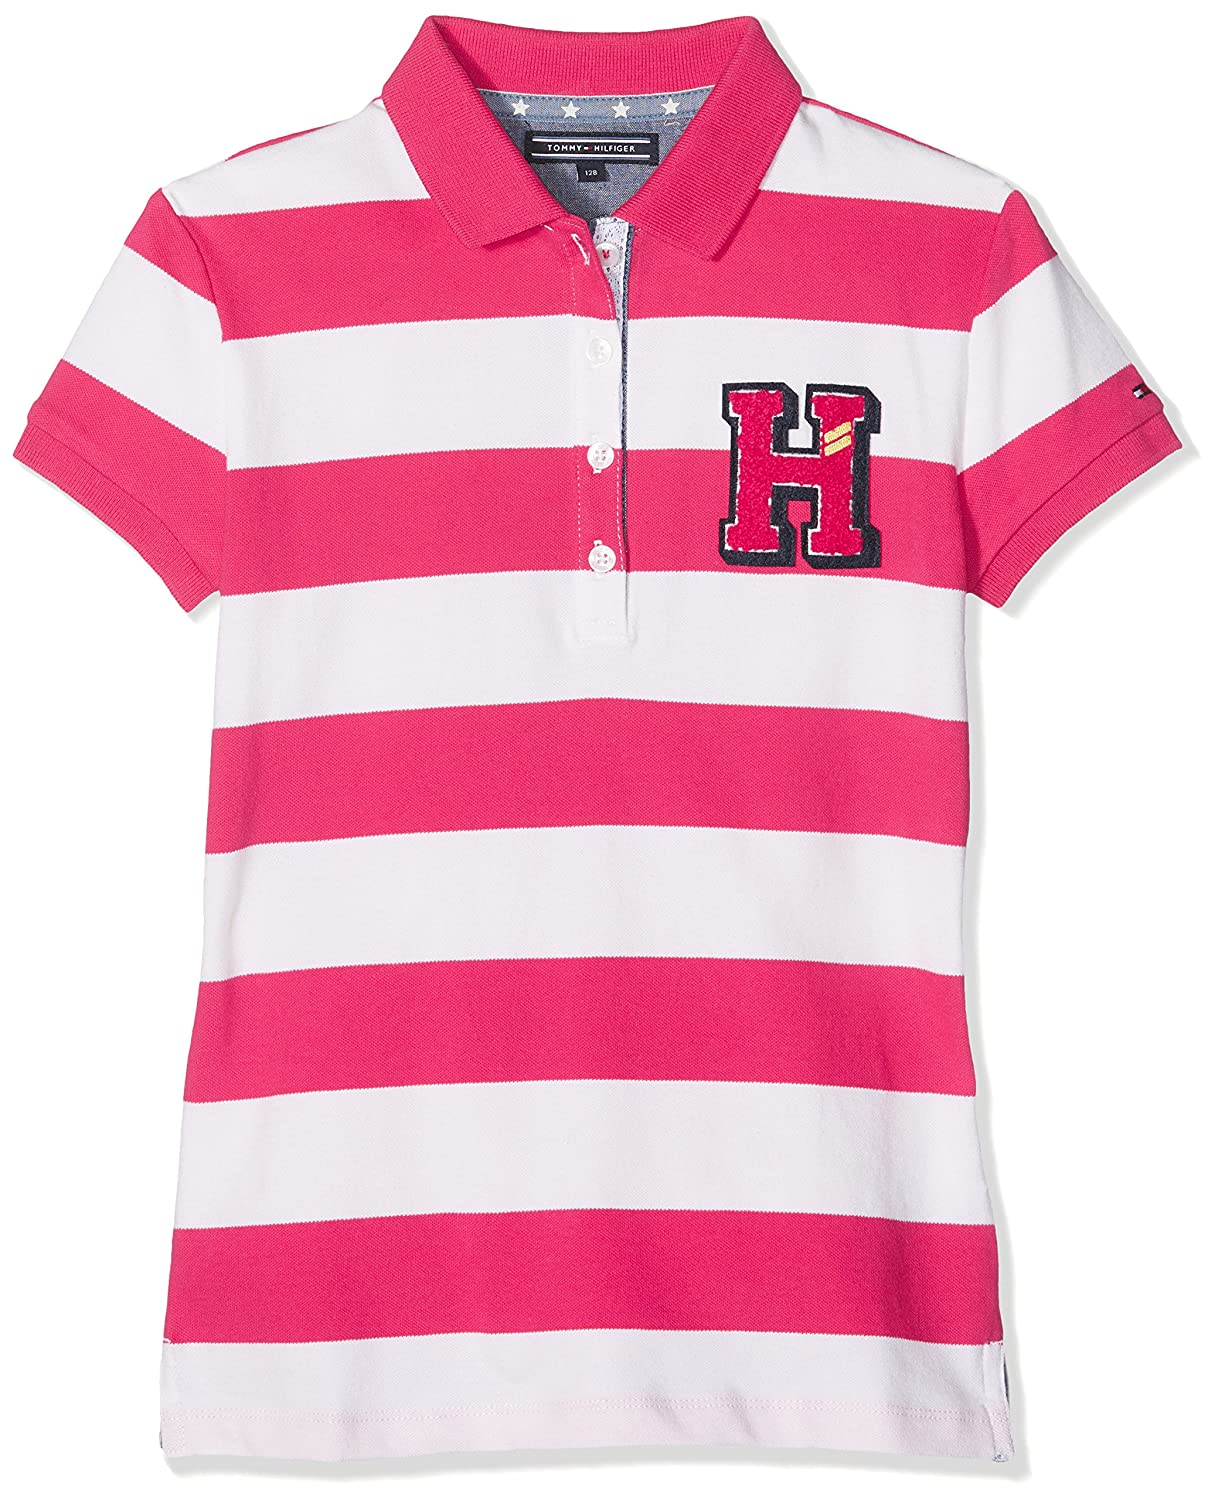 Tommy Hilfiger AME Girls Stripe Polo S/S Shirt Red (Bright Rose 696) 14 Years T.H. Deutschland GmbH KG0KG02323